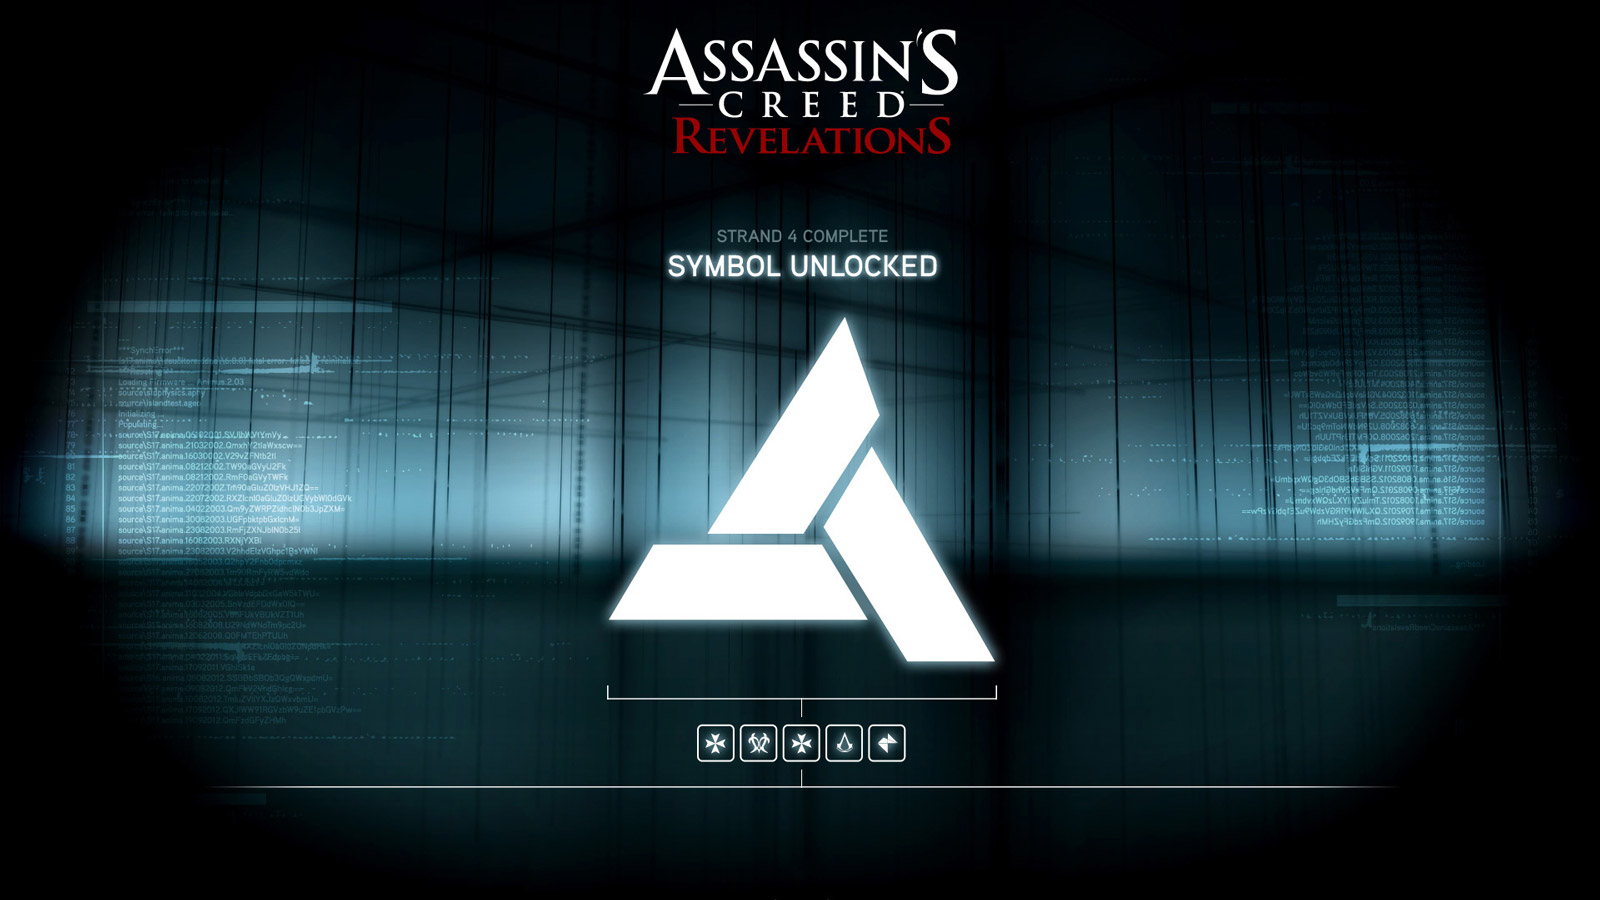 Assassin's Creed: Revelations Wallpaper in 1600x900